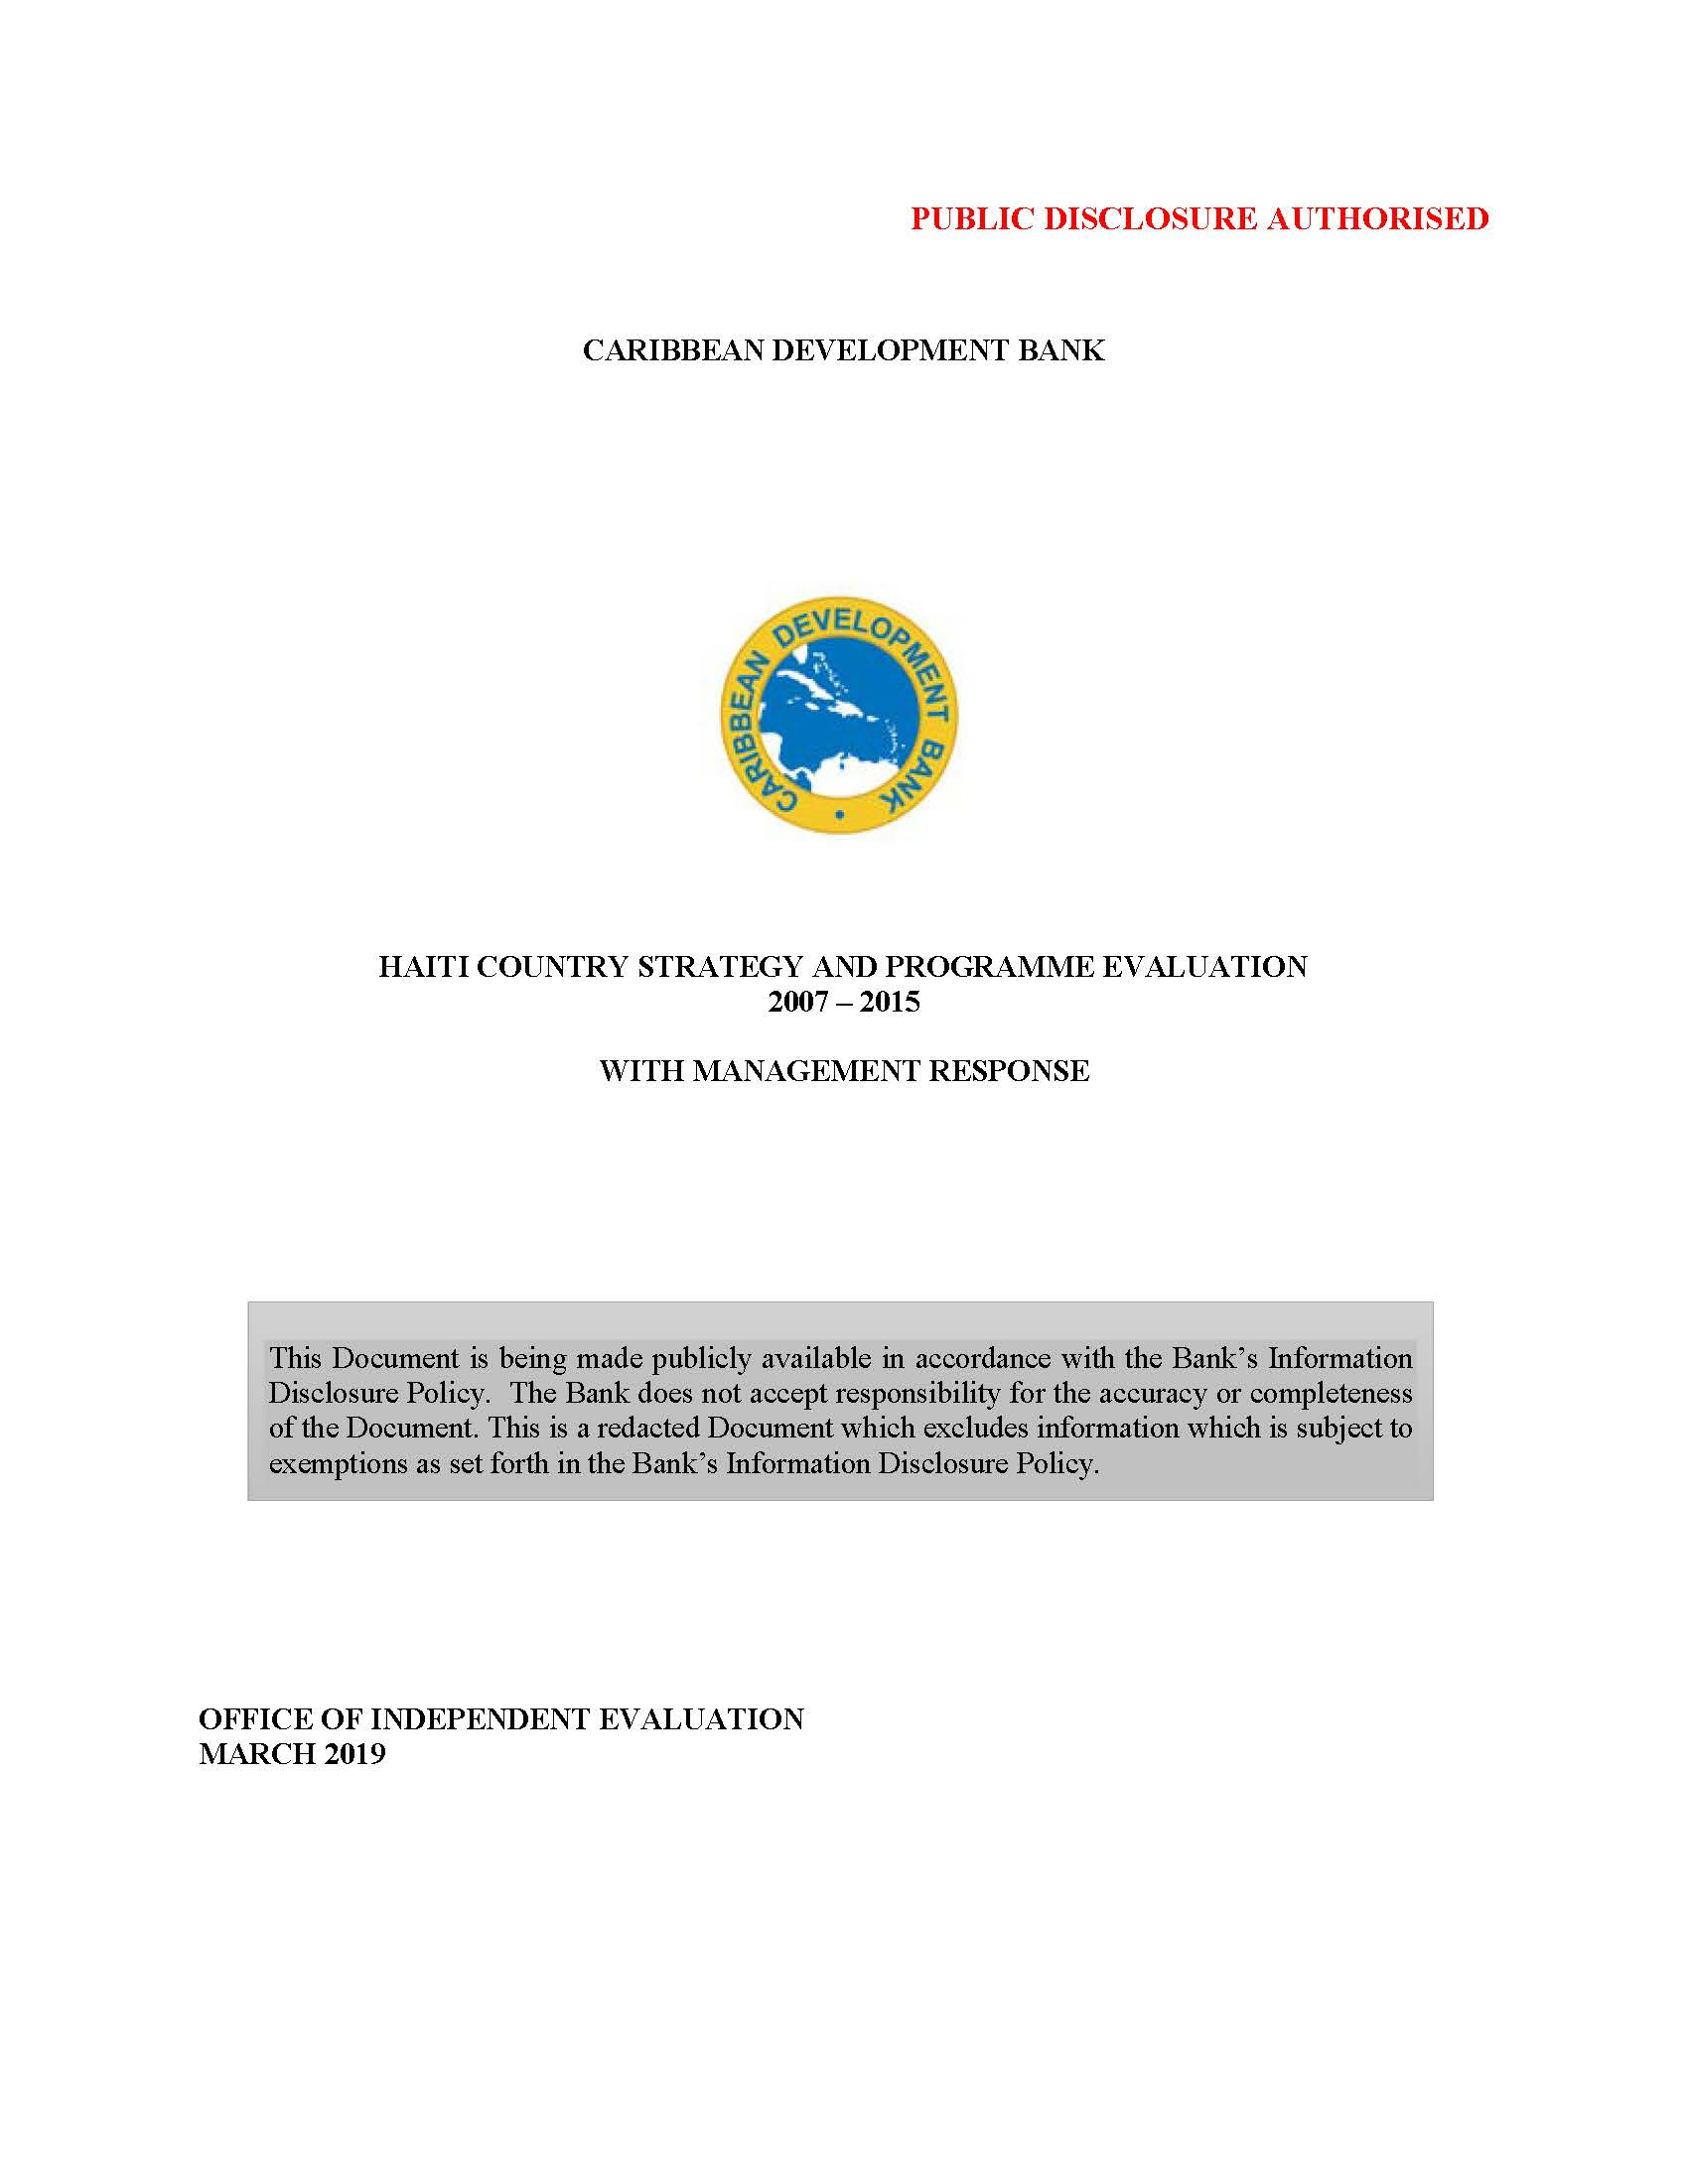 text-based cover featuring document title